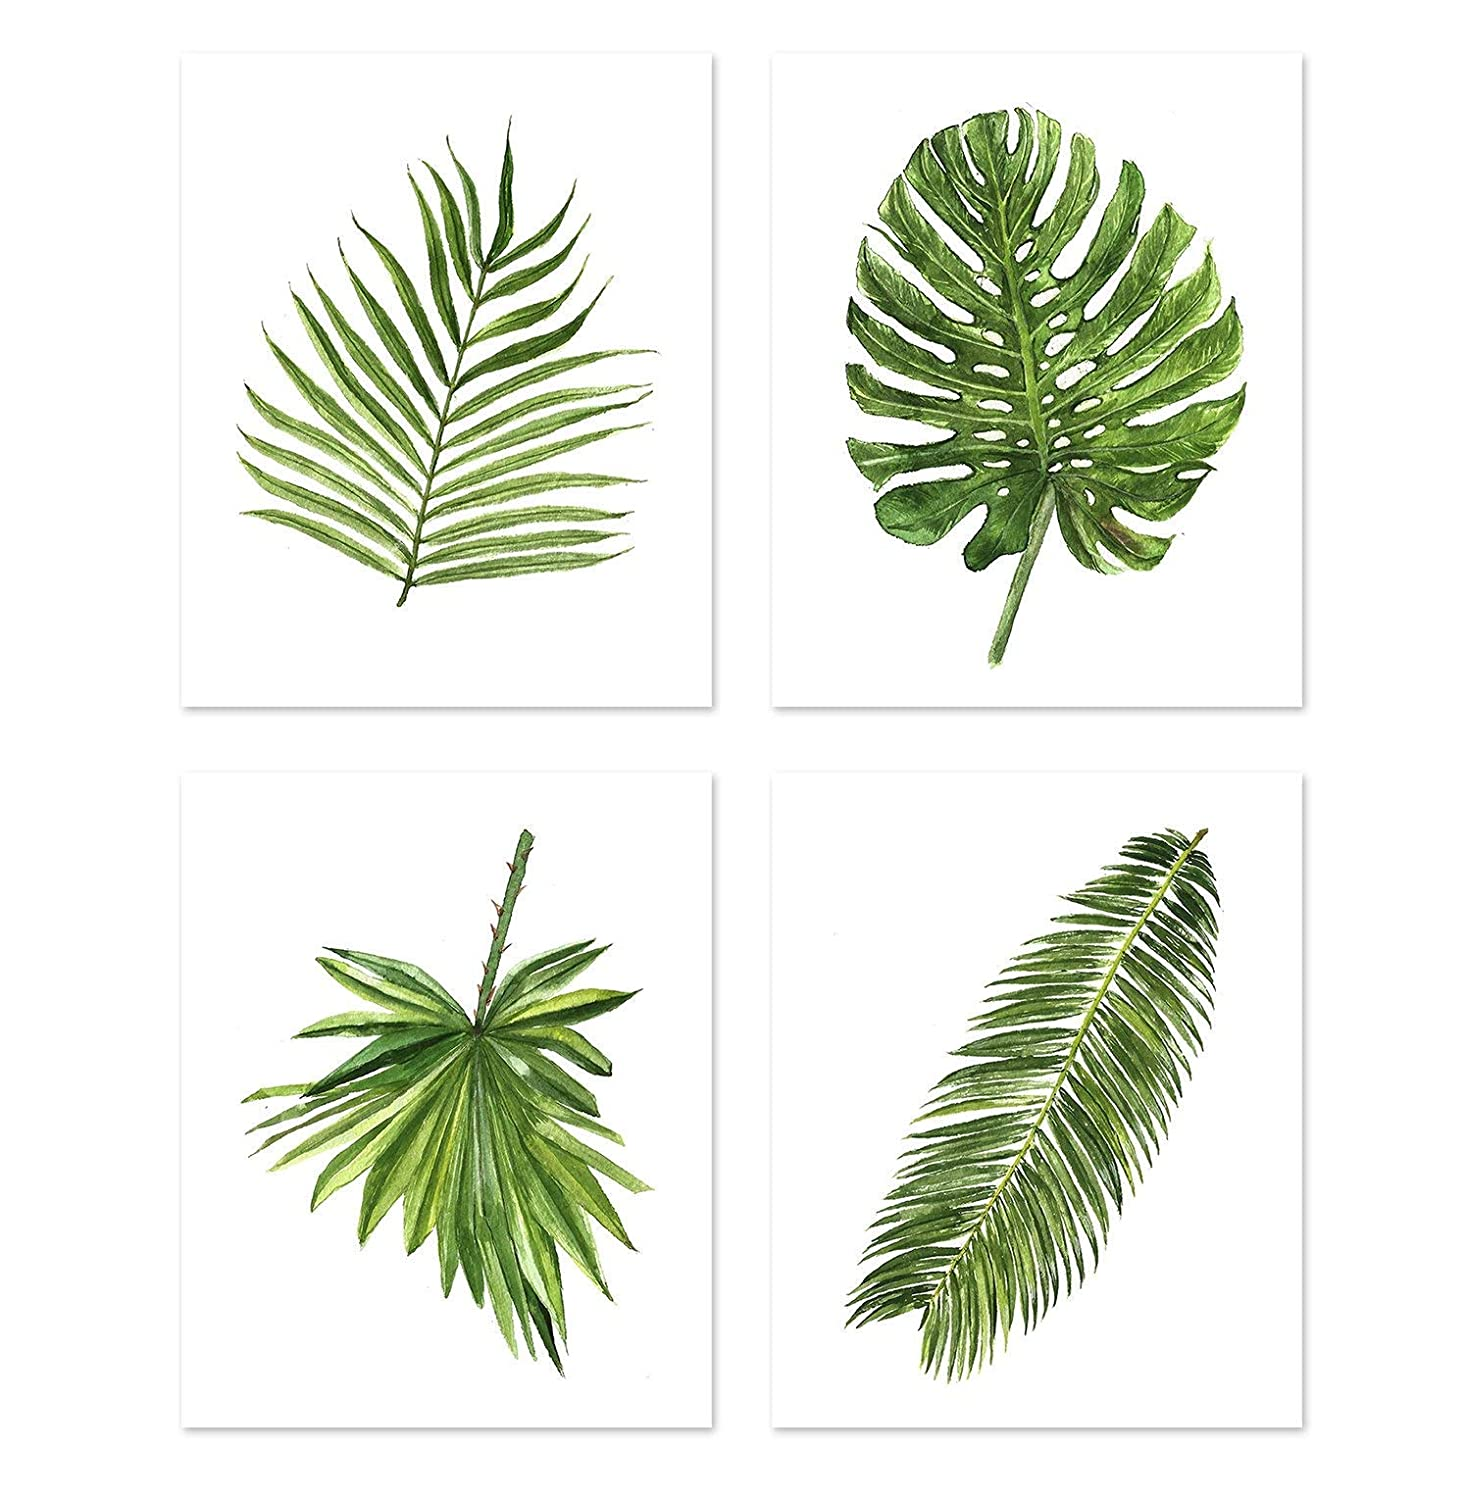 Green Leaf Art A077 Set Of 4 Art Prints 8x10 Green Wall Art Palm Leaf Wall Art Botanical Art Botanical Prints Wall Art Nature Art Botanical Painting